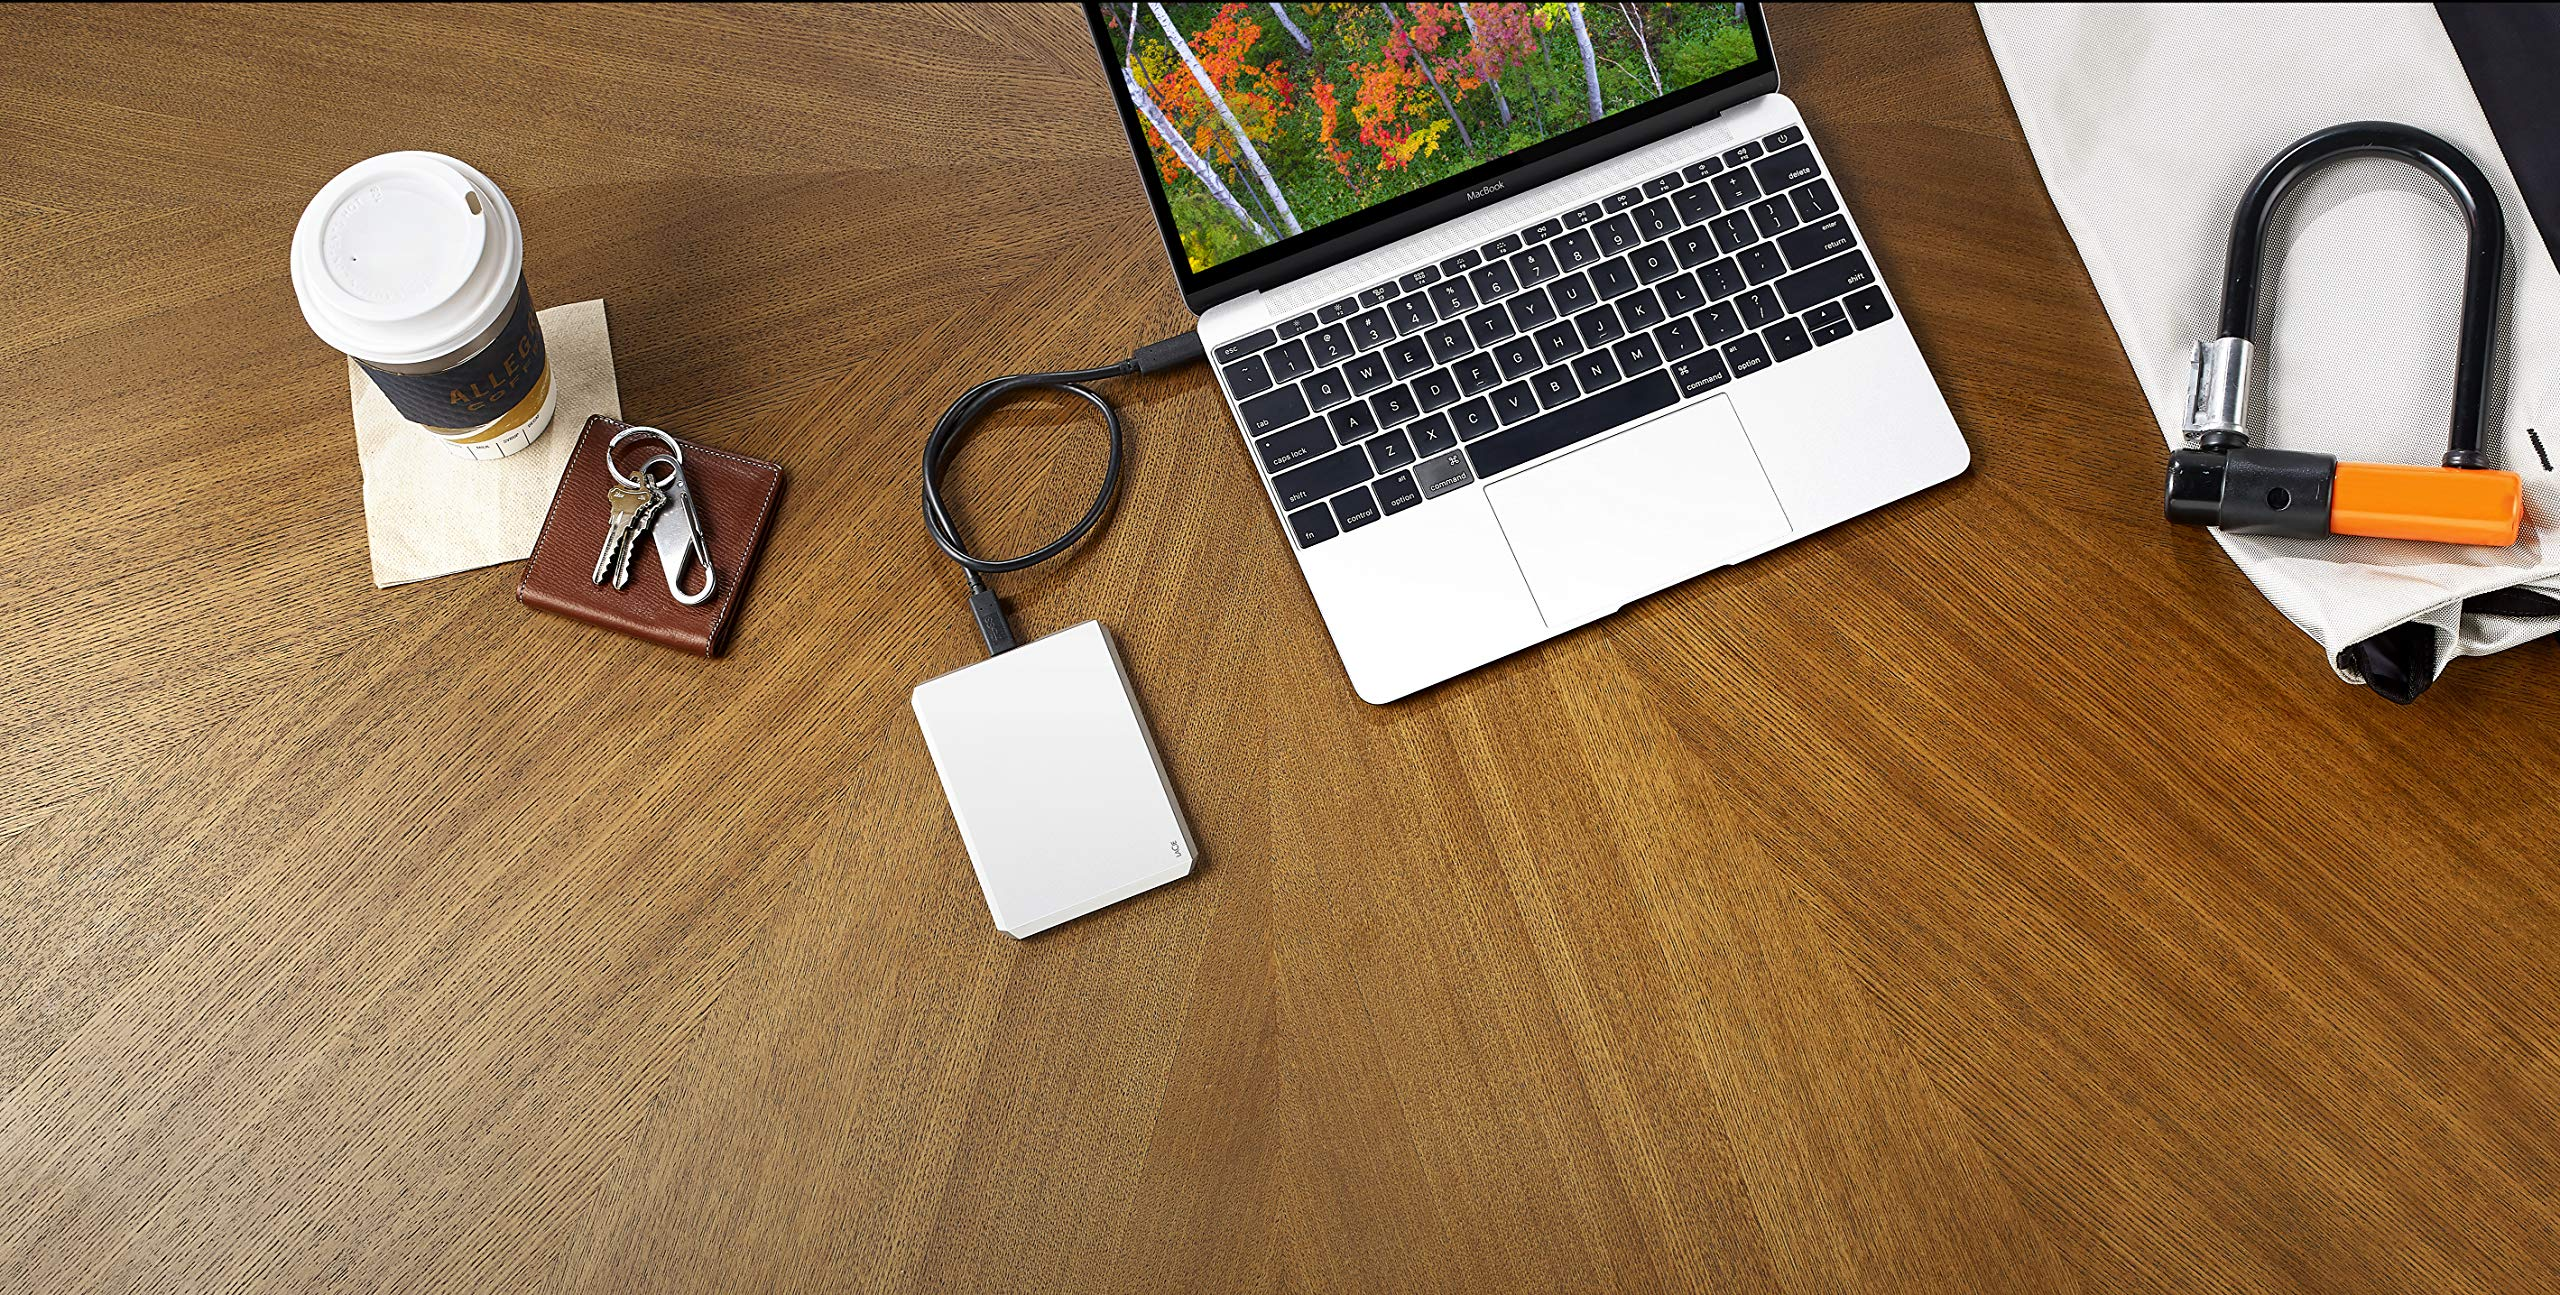 LaCie-Mobile-Drive-USB-C-USB-30-Portable-External-Hard-Drive-for-PC-and-Mac